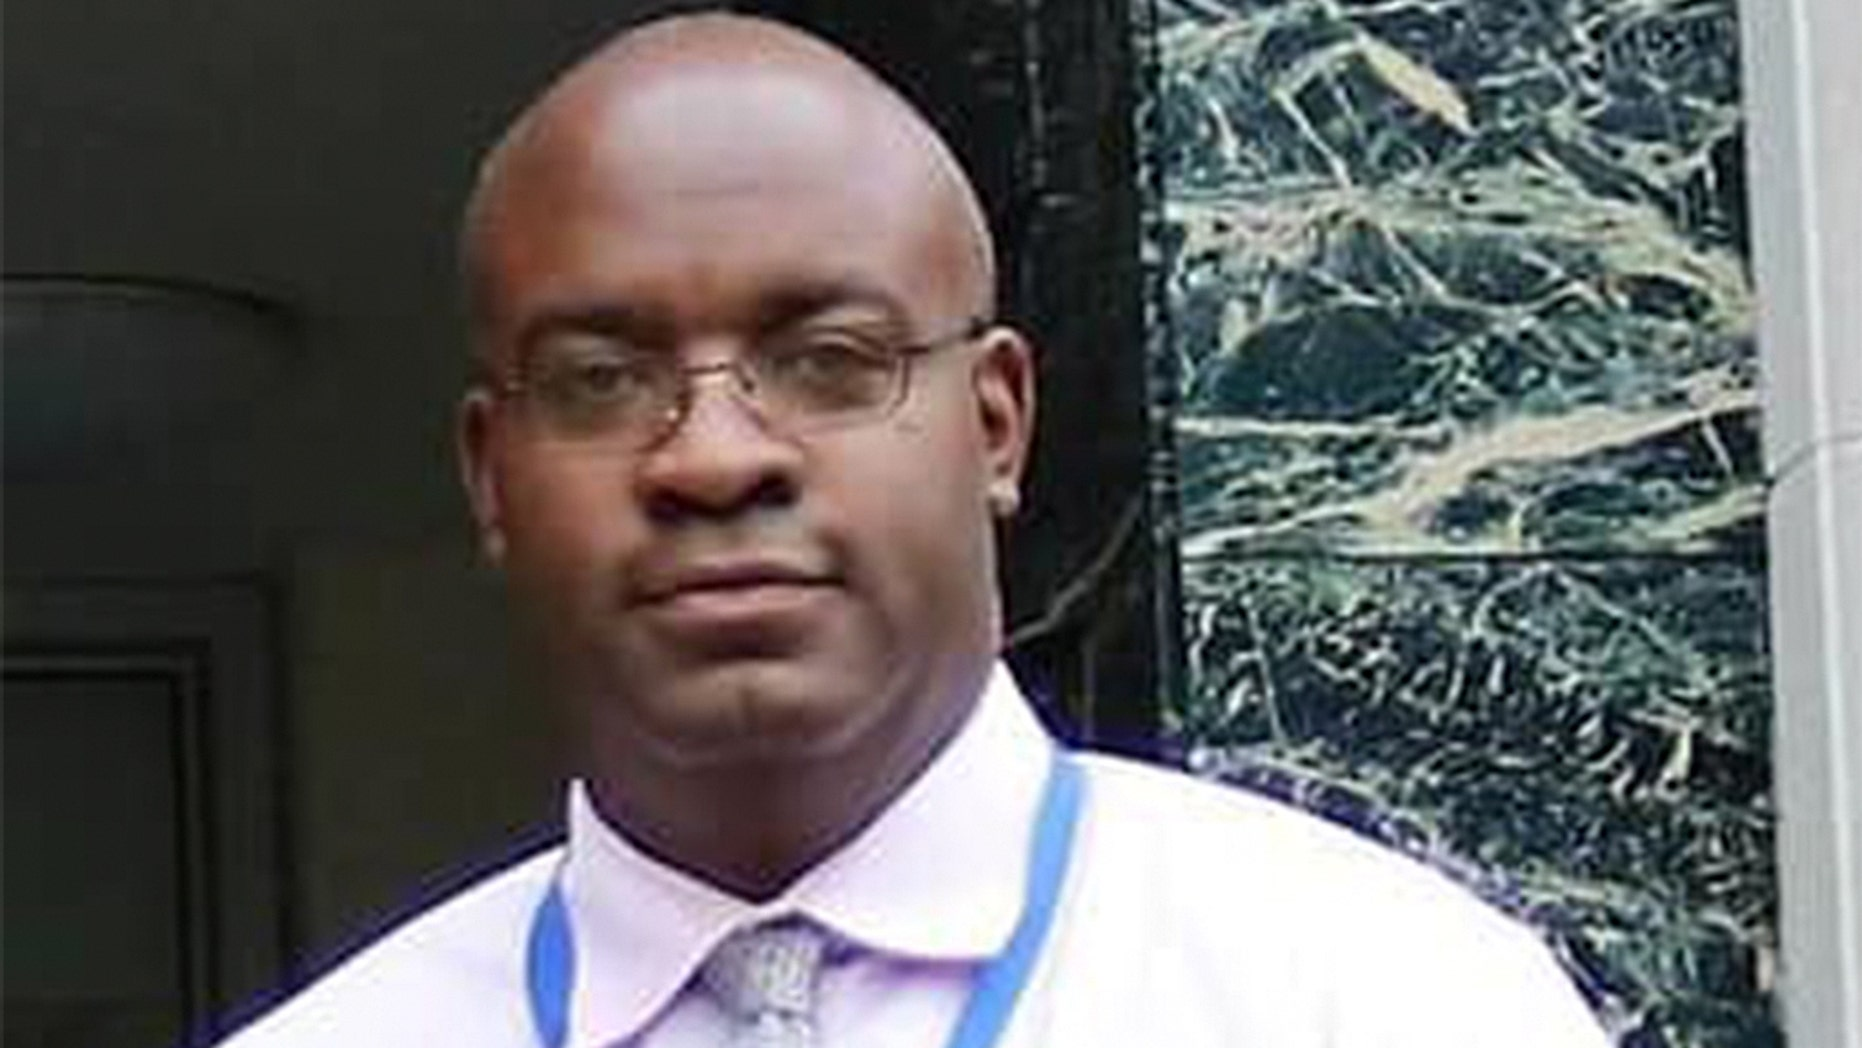 Westfield High School principal Derrick Nelson, 44, died Sunday weeks after donating bone marrow to help save a boy in France.